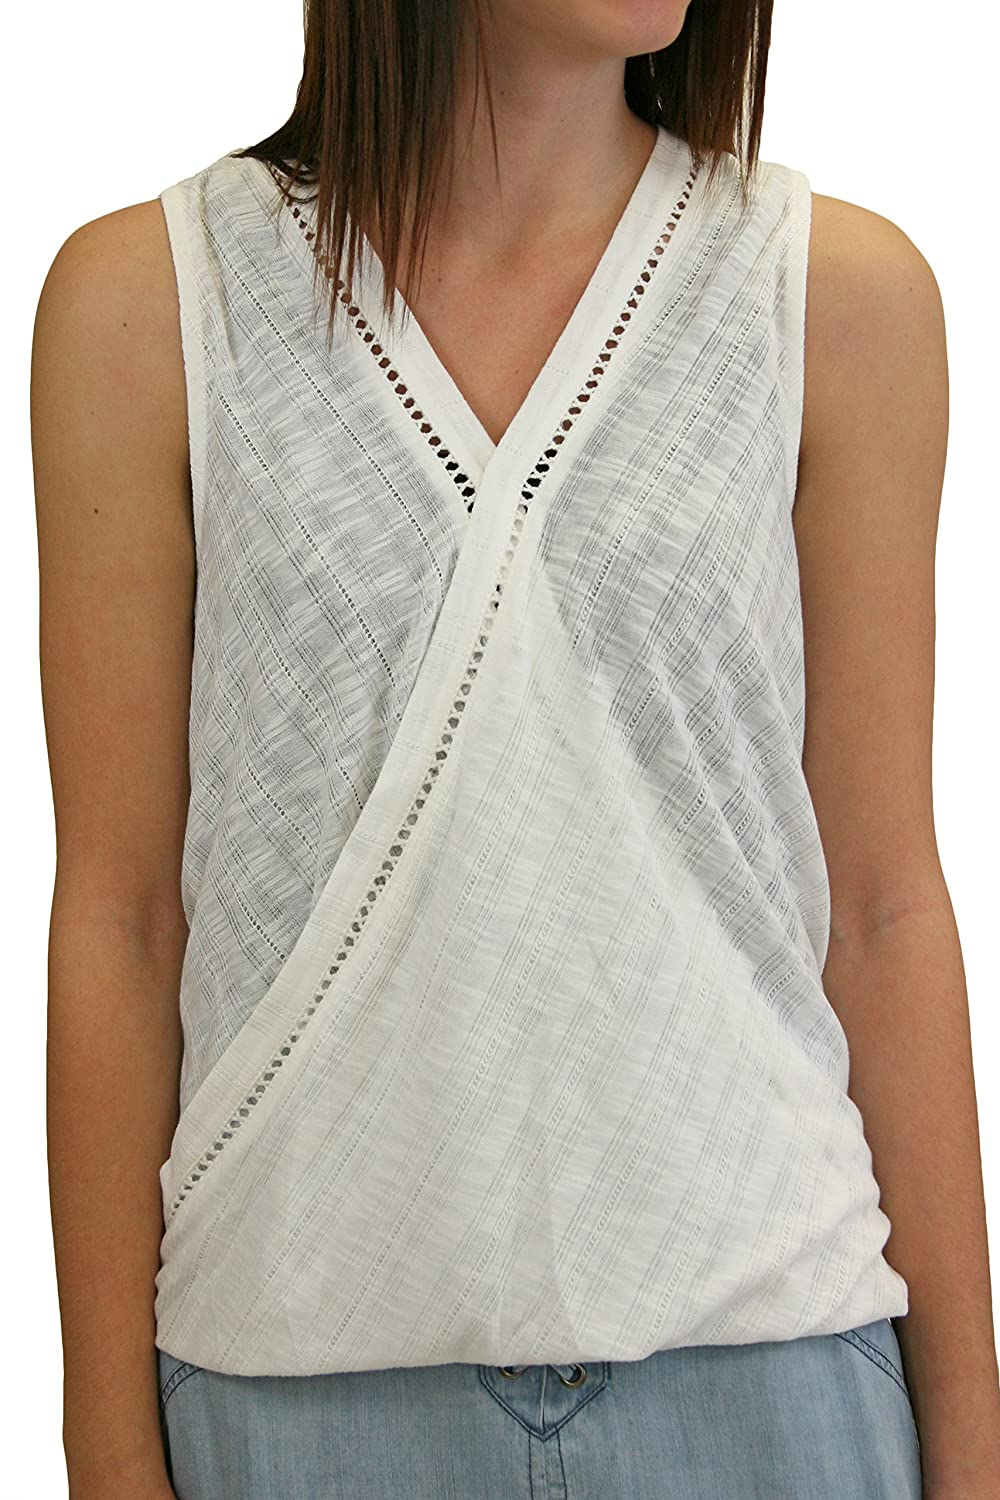 Hem and Thread L4218 White Lace Wrap Top